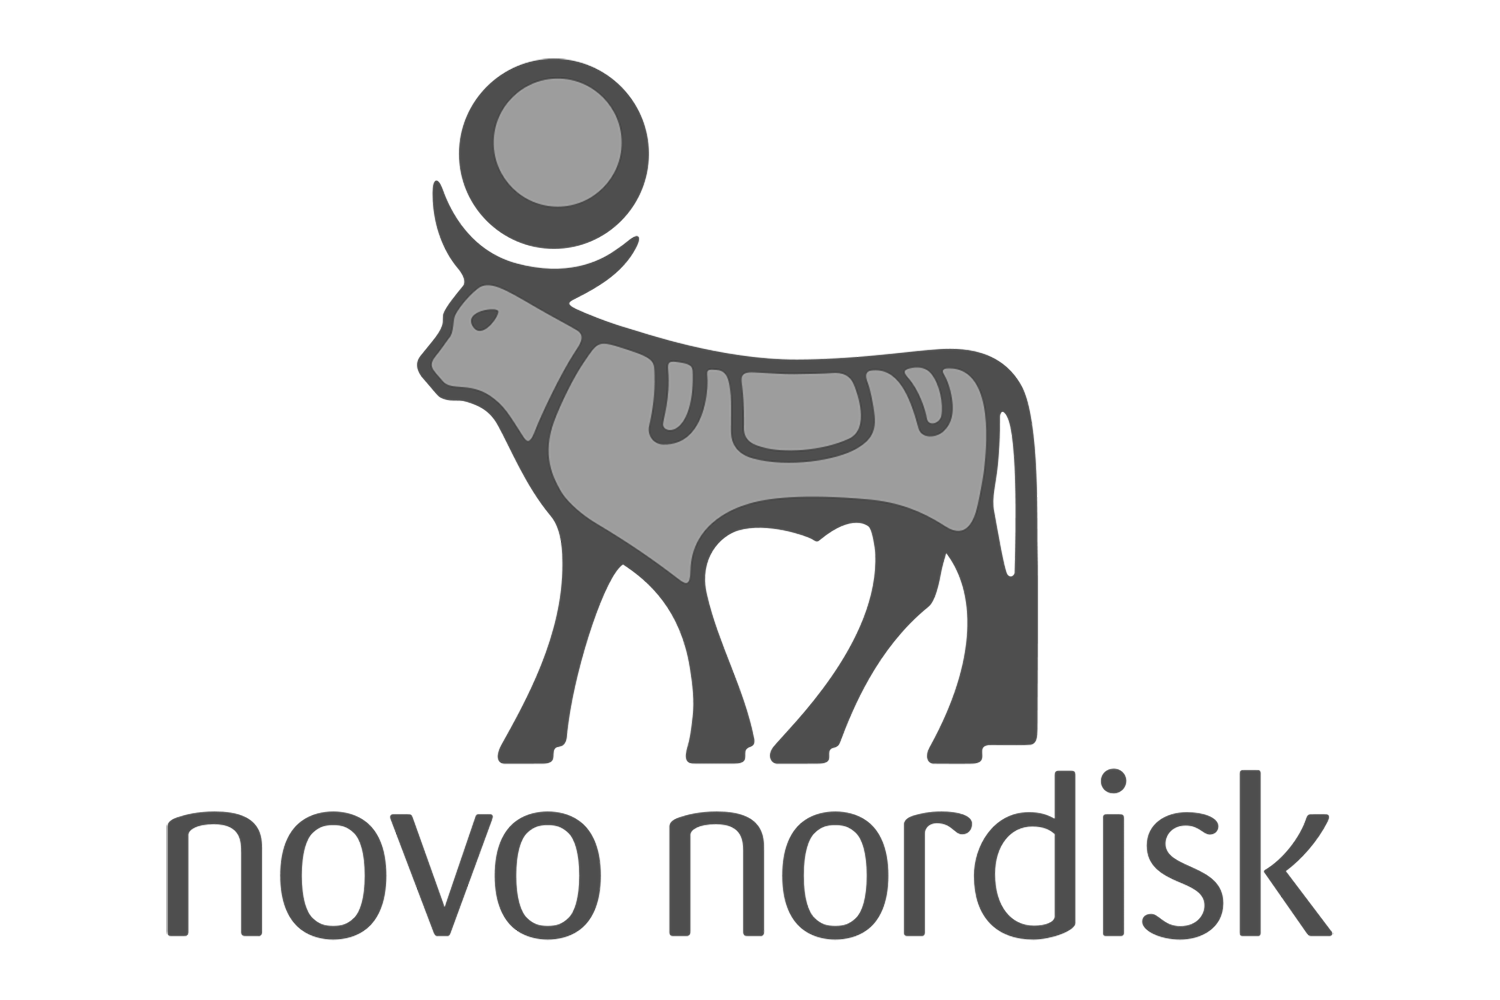 novo_nordisk_logo_tight.png